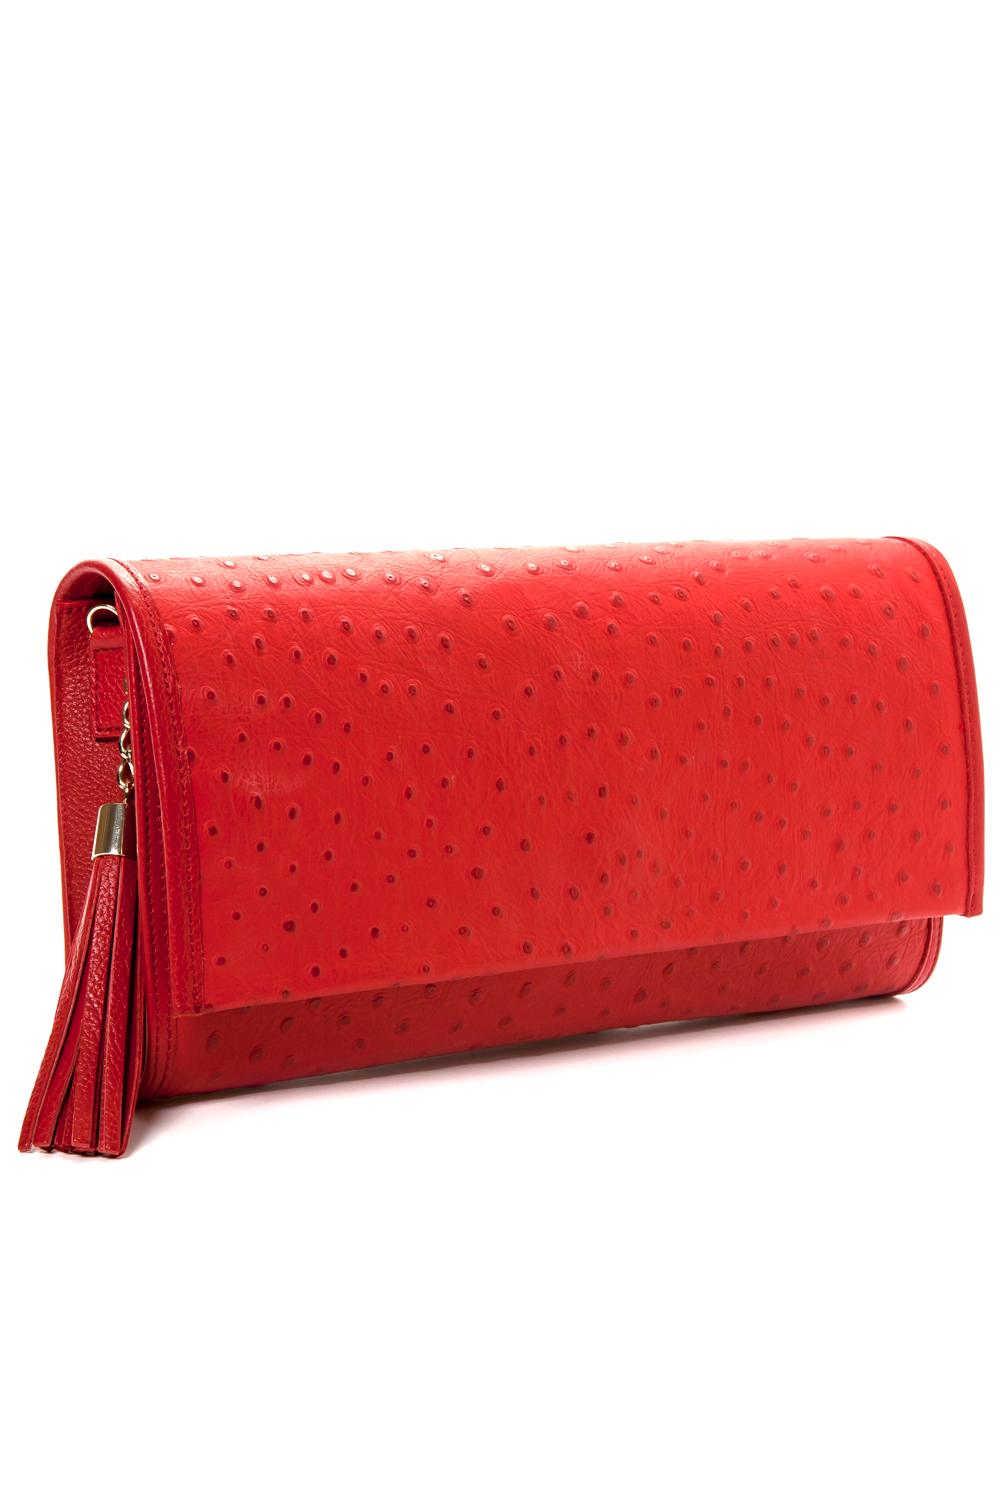 'Cara' Envelope Clutch in Red Ostrich Print Leather | Mel Boteri | Side View